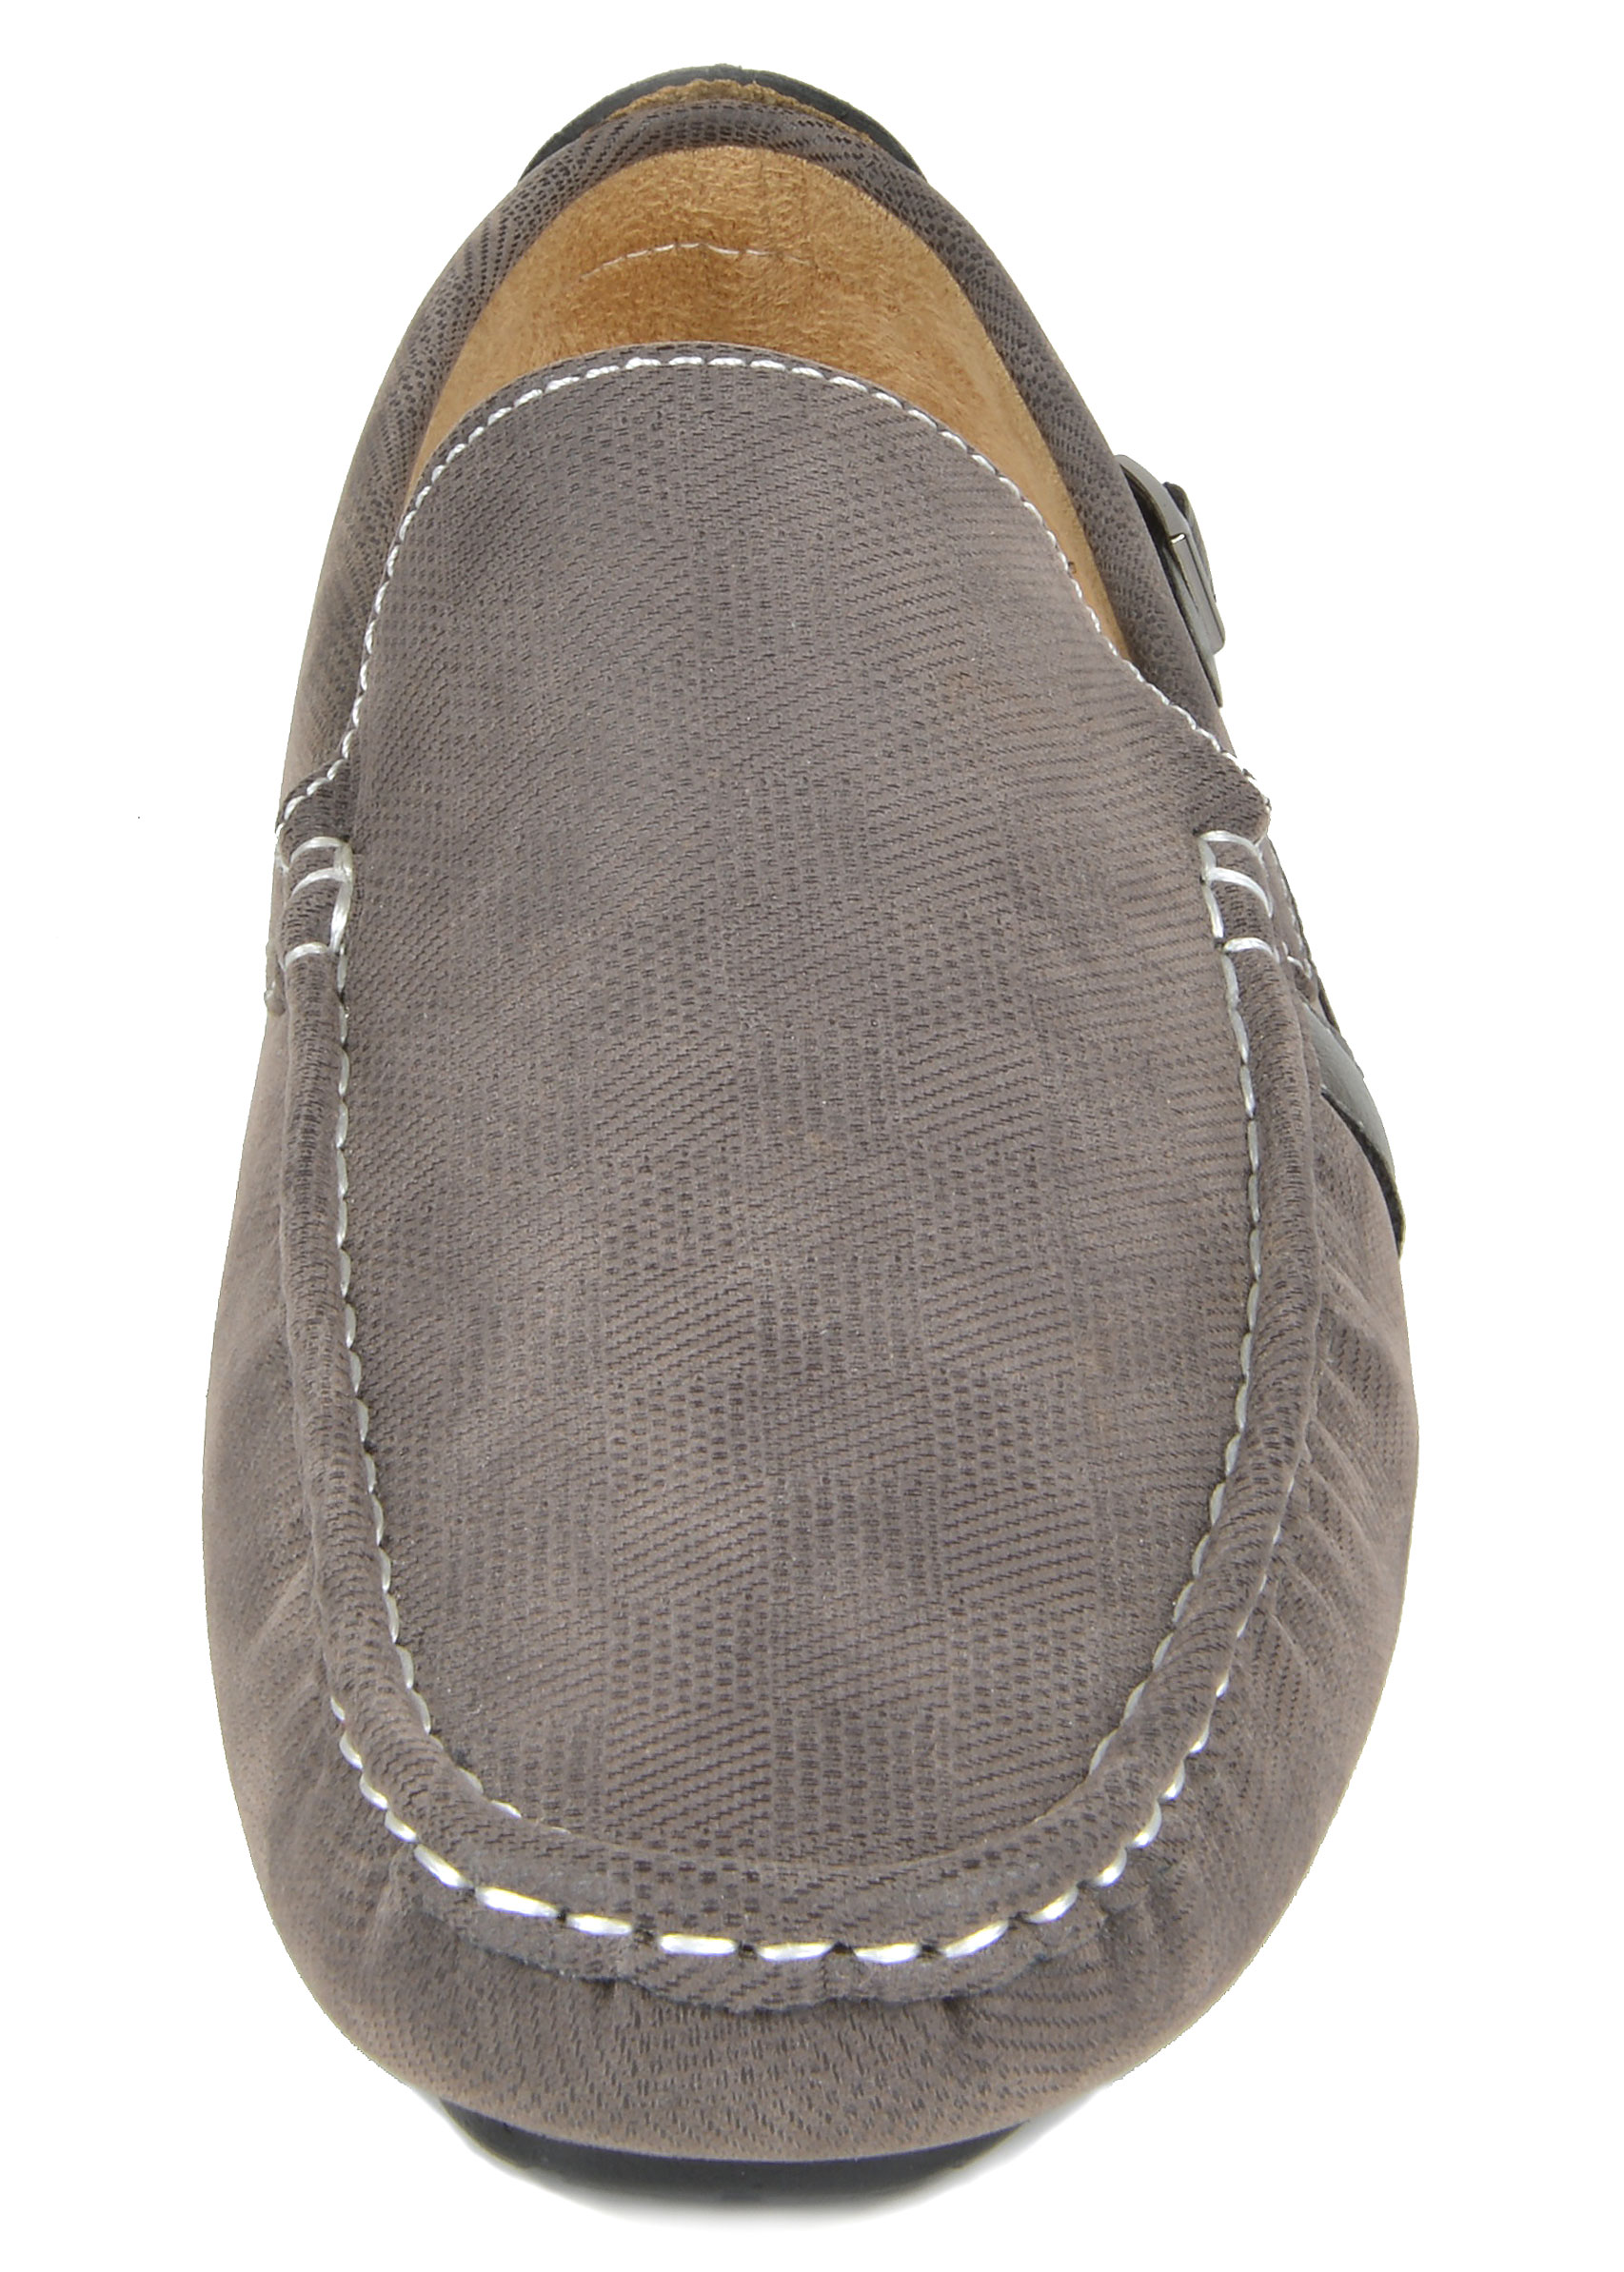 Bruno-Marc-Men-039-s-New-Classic-Fashion-Slip-on-Driving-Casual-Loafers-Boat-Shoes thumbnail 63